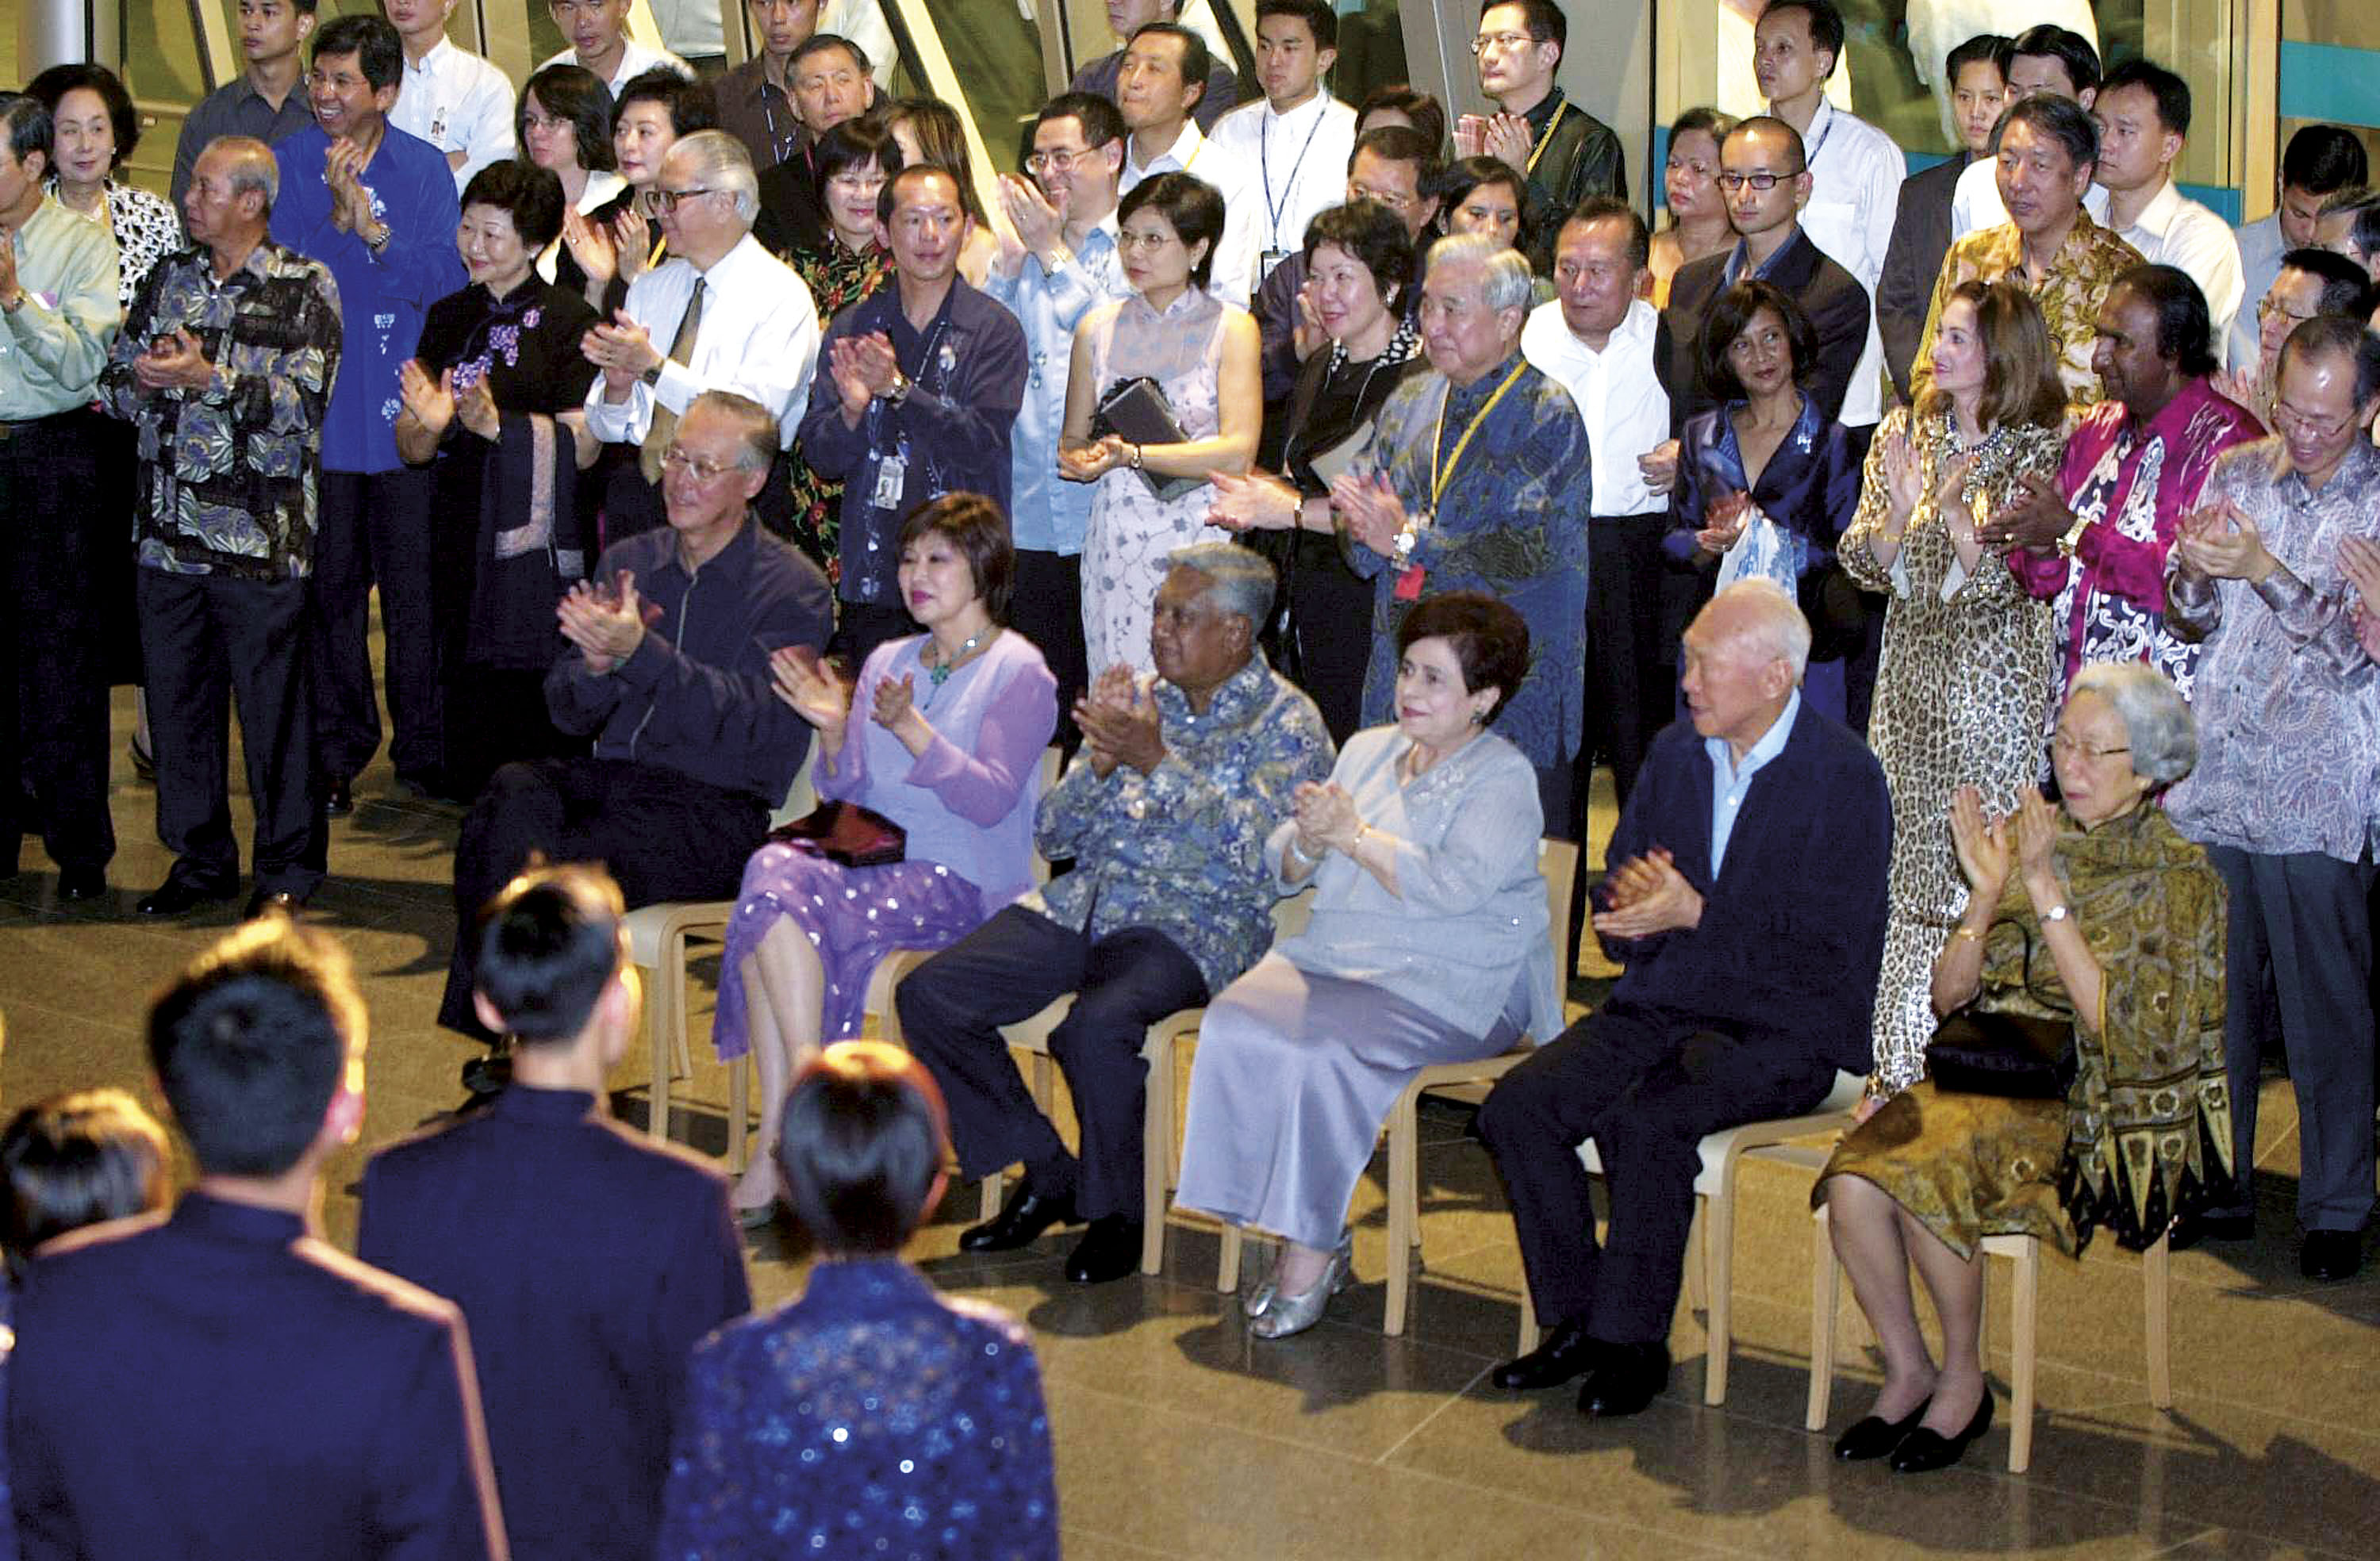 VIPs at Esplanade's opening event (seated, left to right - then Singapore Prime Minister Goh Chok Tong and Mrs Goh, then President SR Nathan and Mrs Nathan, and then Senior Minister Lee Kuan Yew and Mrs Lee.